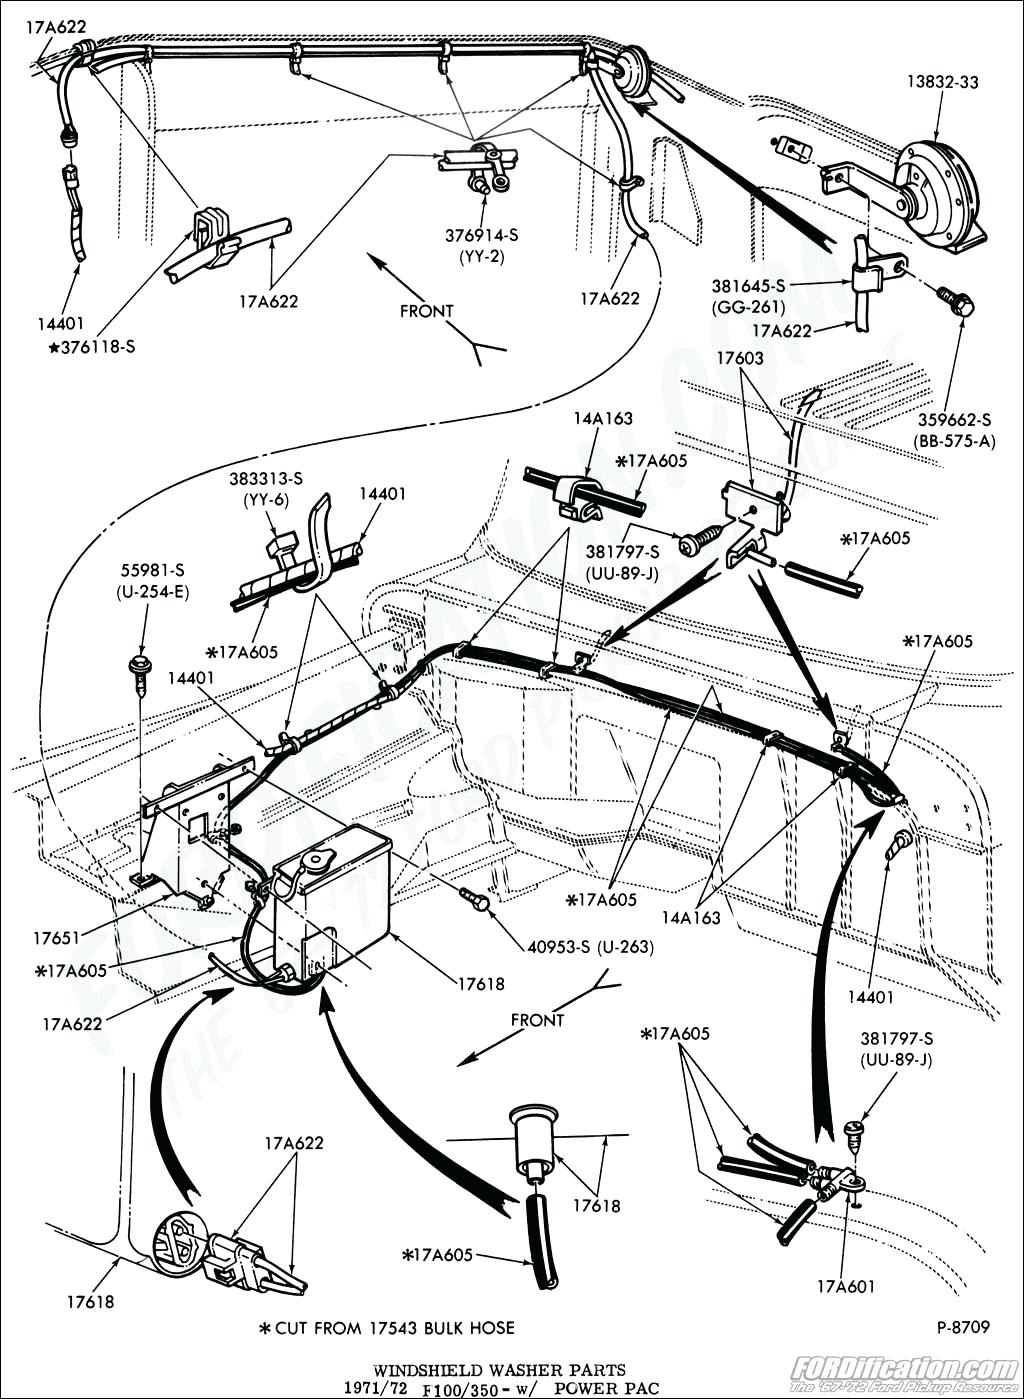 2002 Ford F 350 Fuse Box Diagram Electrical Drawing At Free For Personal Use 1024x1399 F350